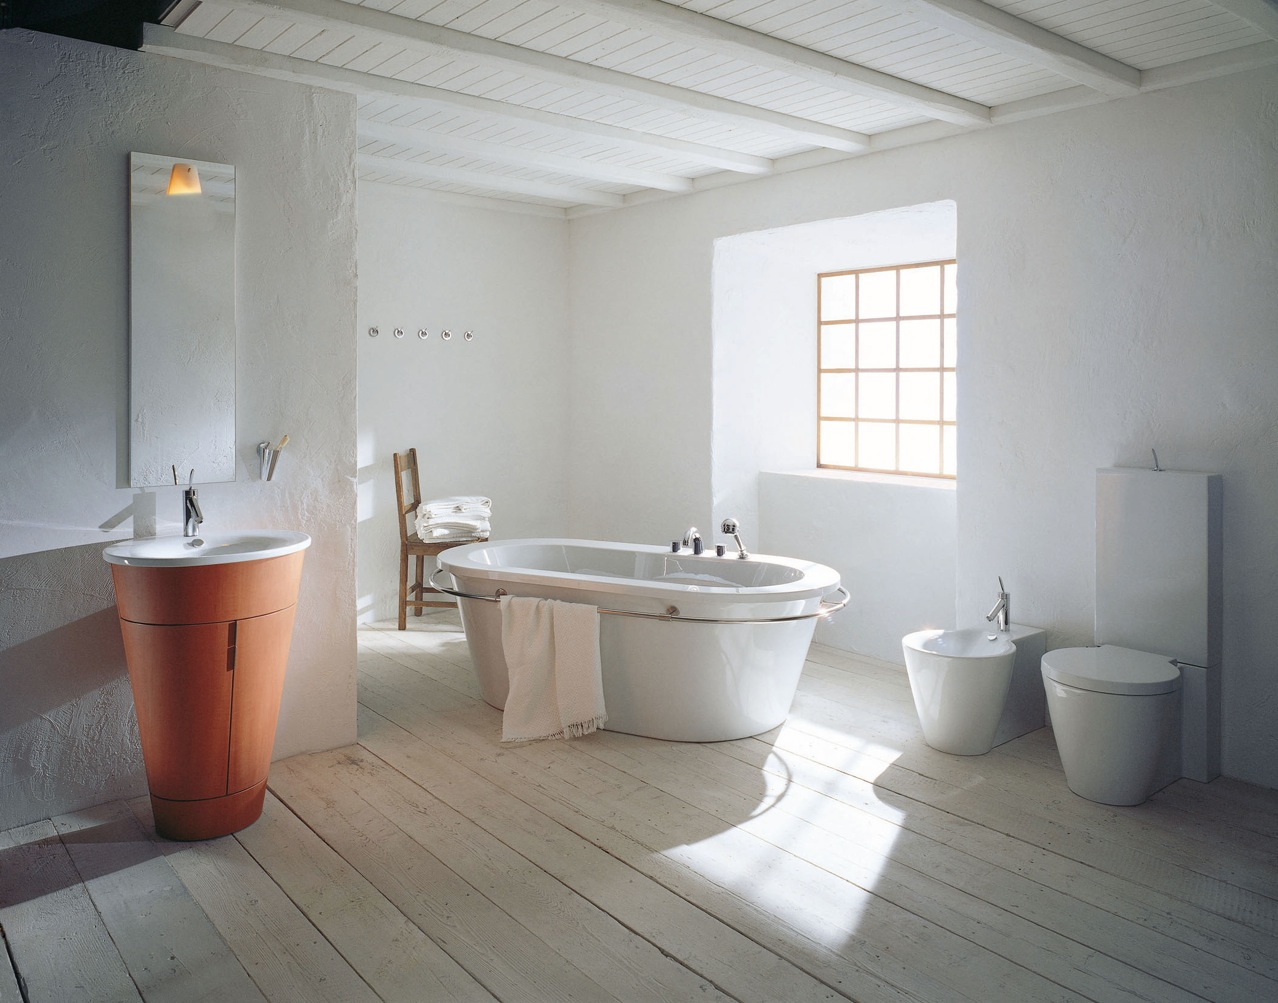 Philipe starck rustic modern bathroom decor for Bathroom decor